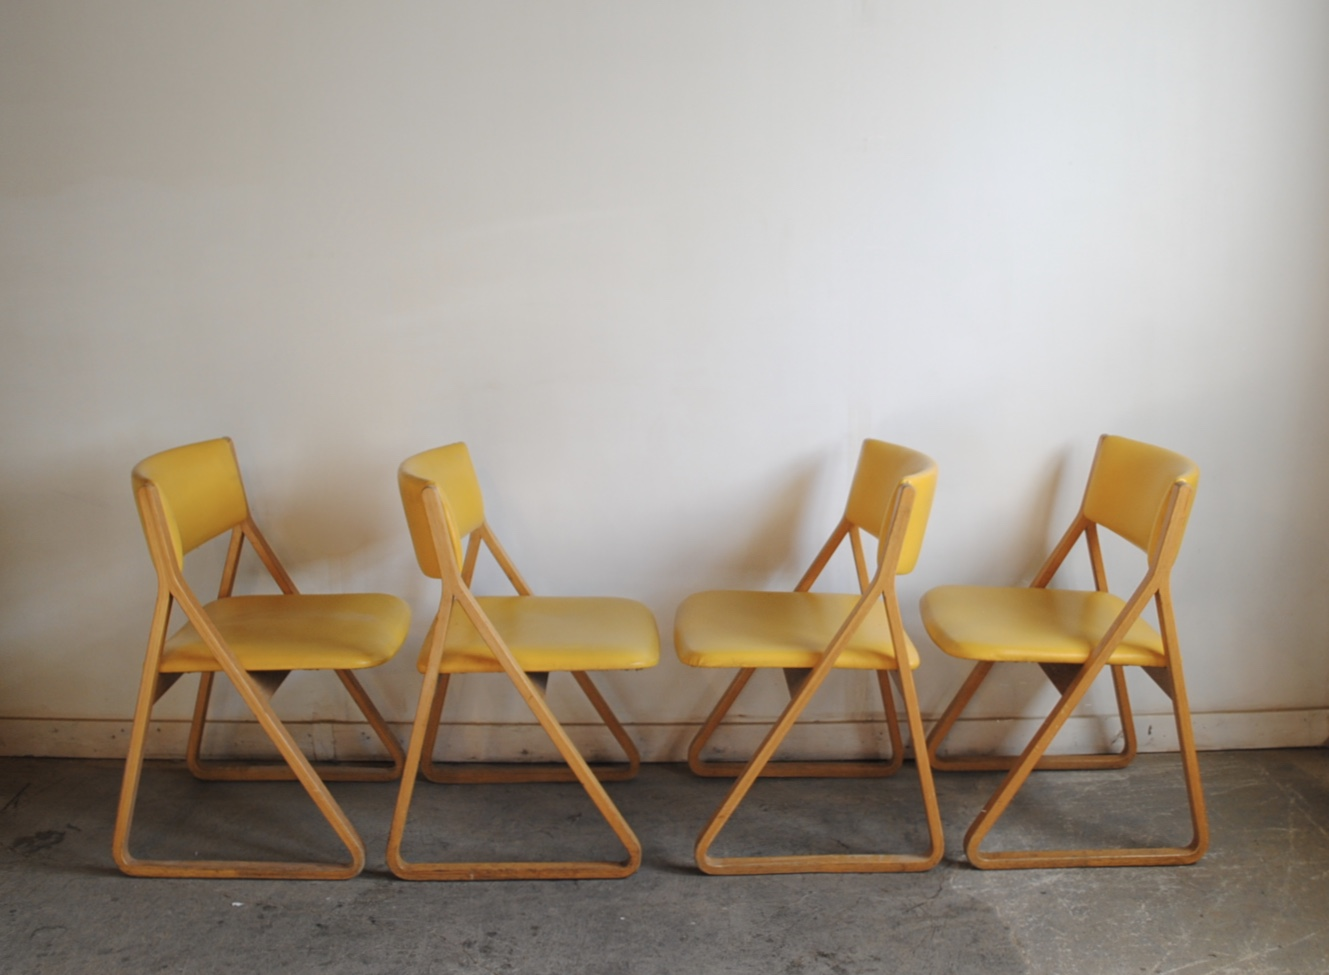 Set Of Four Vintage Stow Davis U201cTriangleu201d Chairs Designed By Robert  DeFuccio. Please Contact Me With Any Questions.